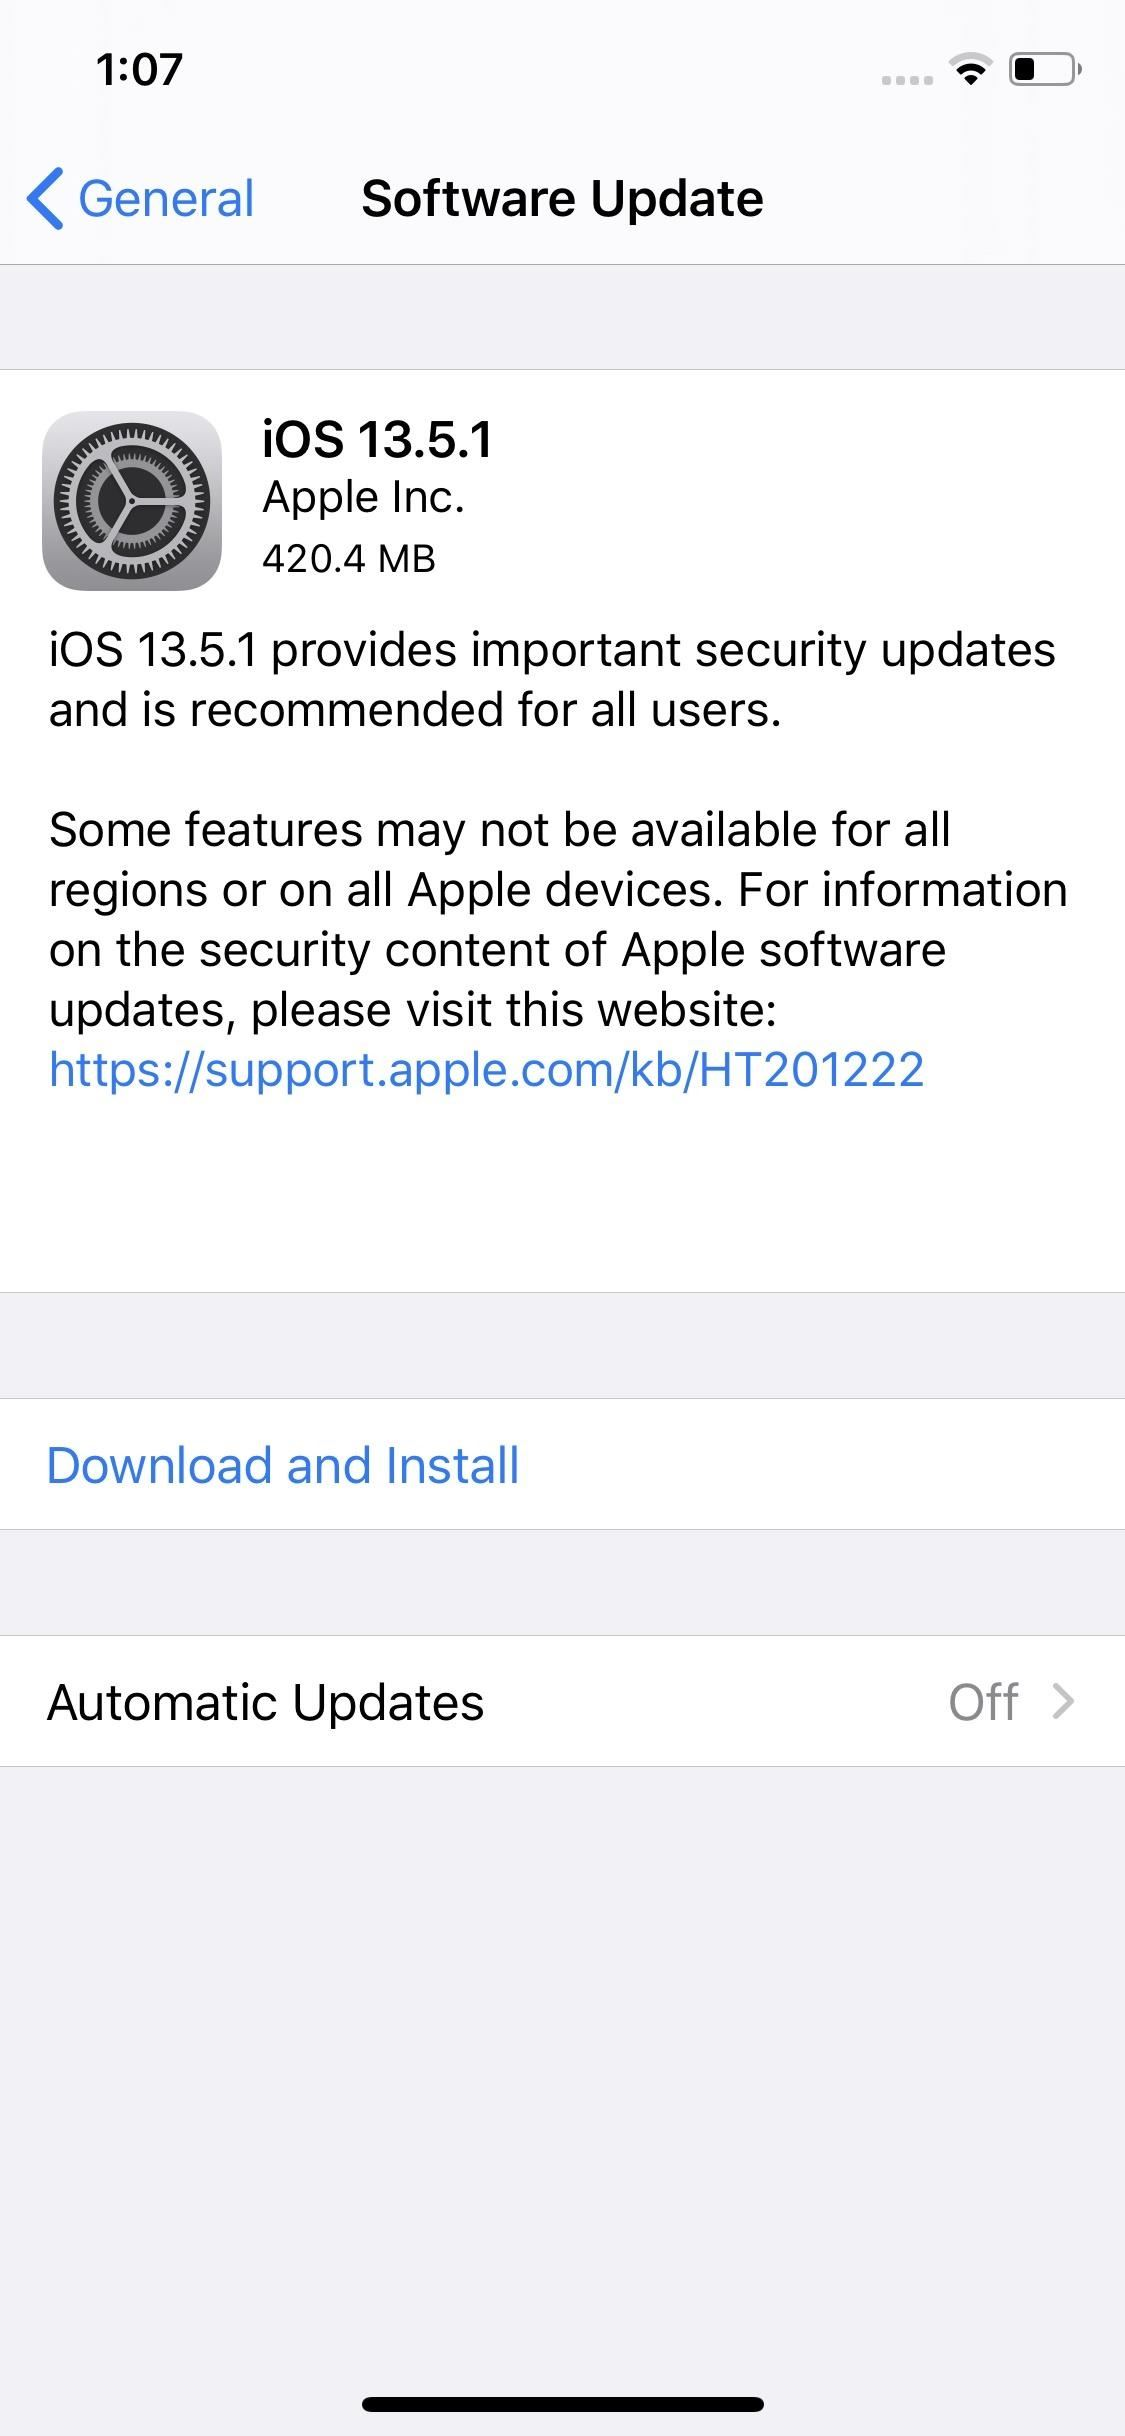 Apple releases iOS 13.5.1 for iPhone with